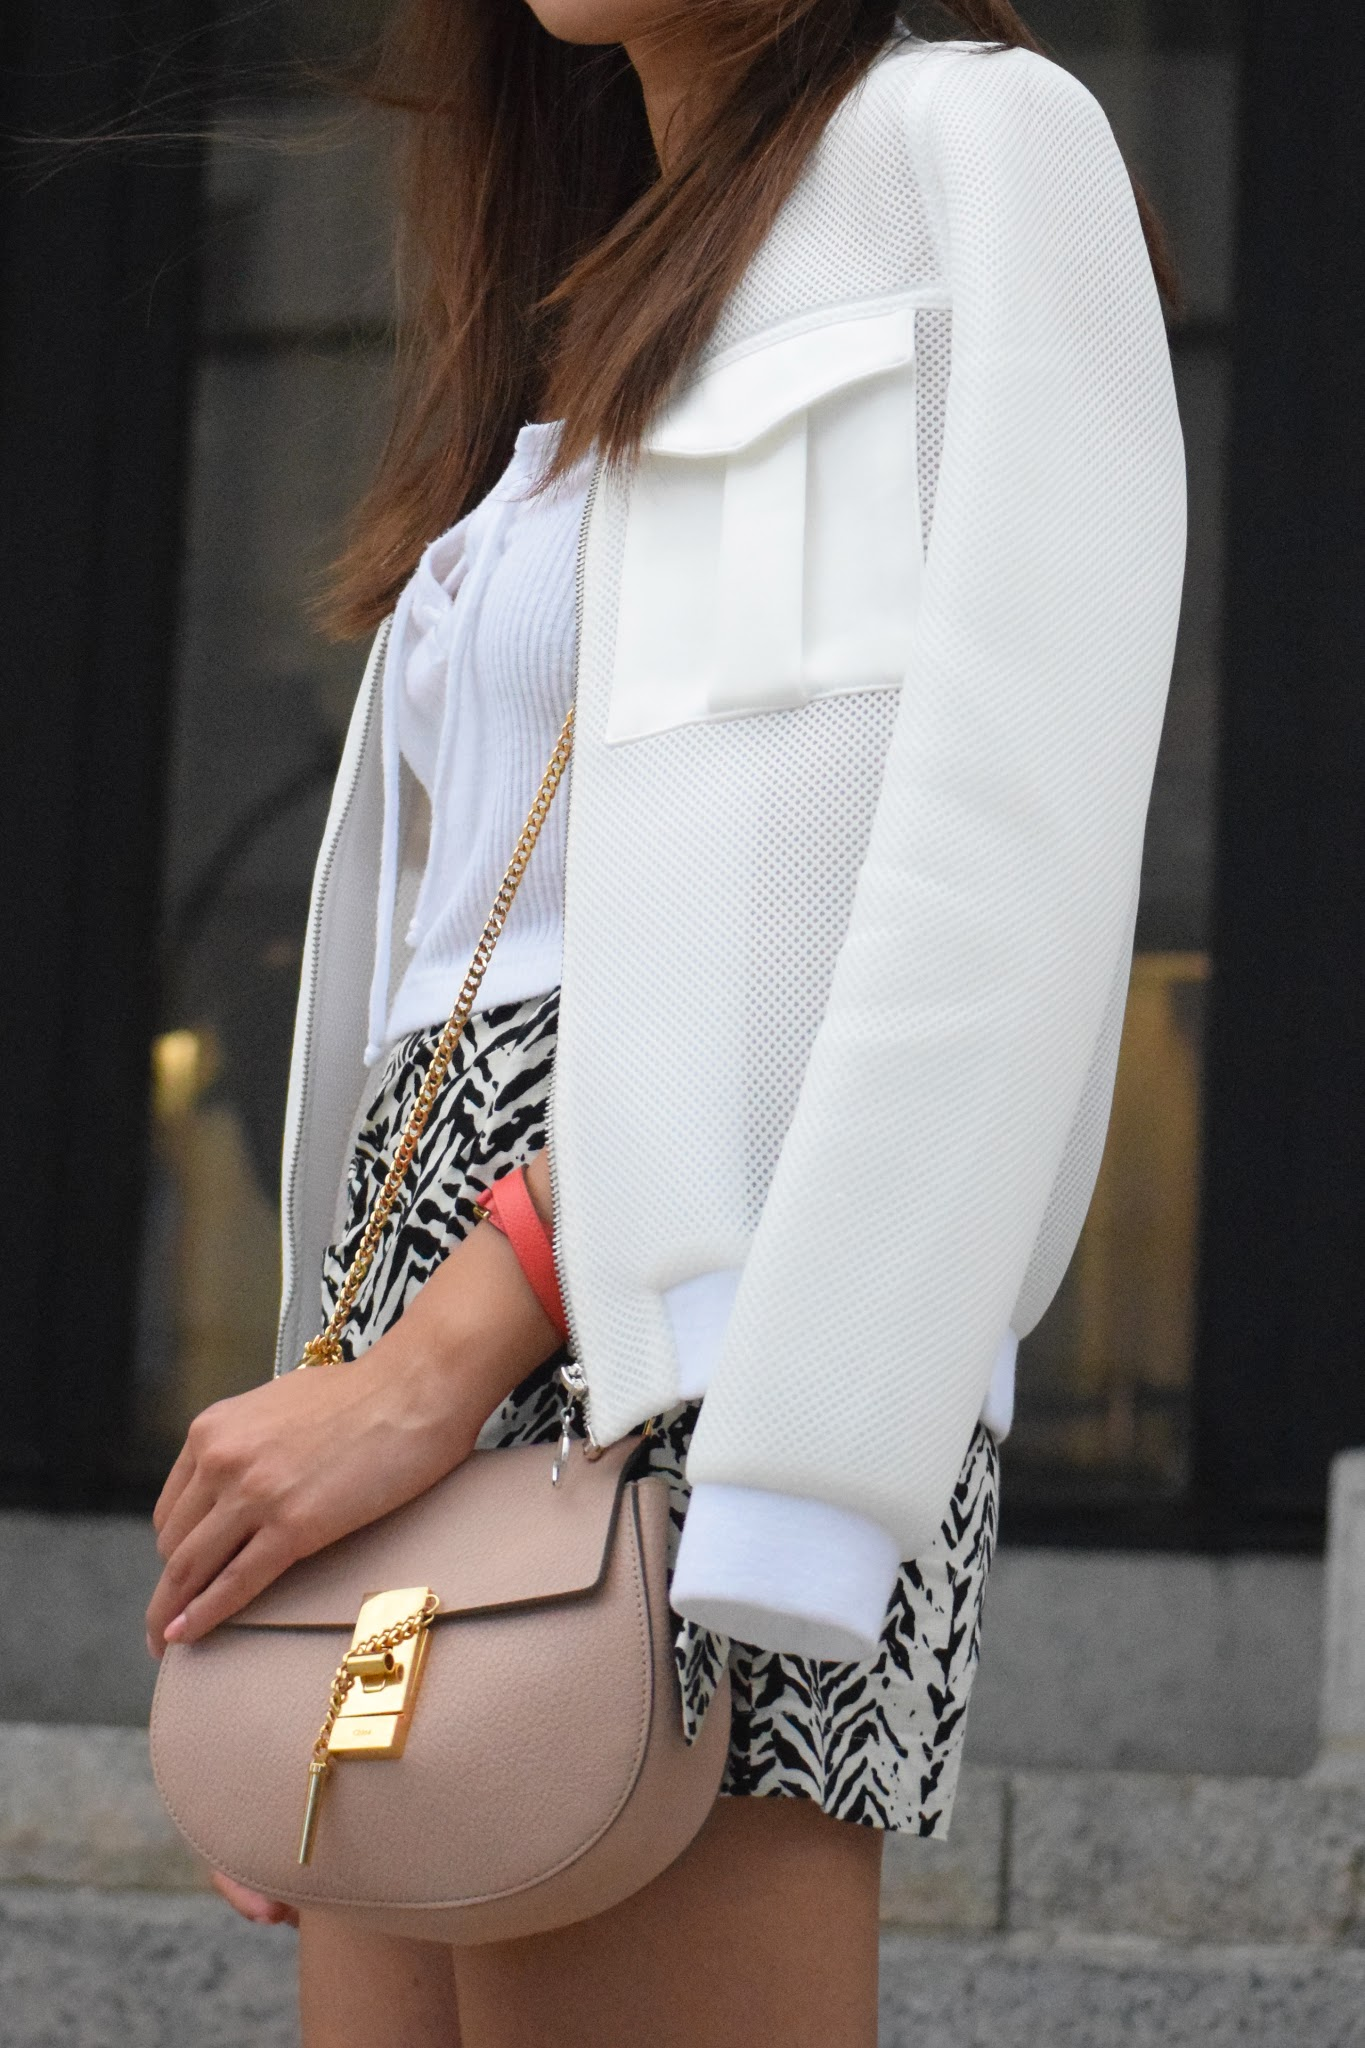 explicit affairs angela chen NYFW chloe drew bag - topshop bomber - outfit